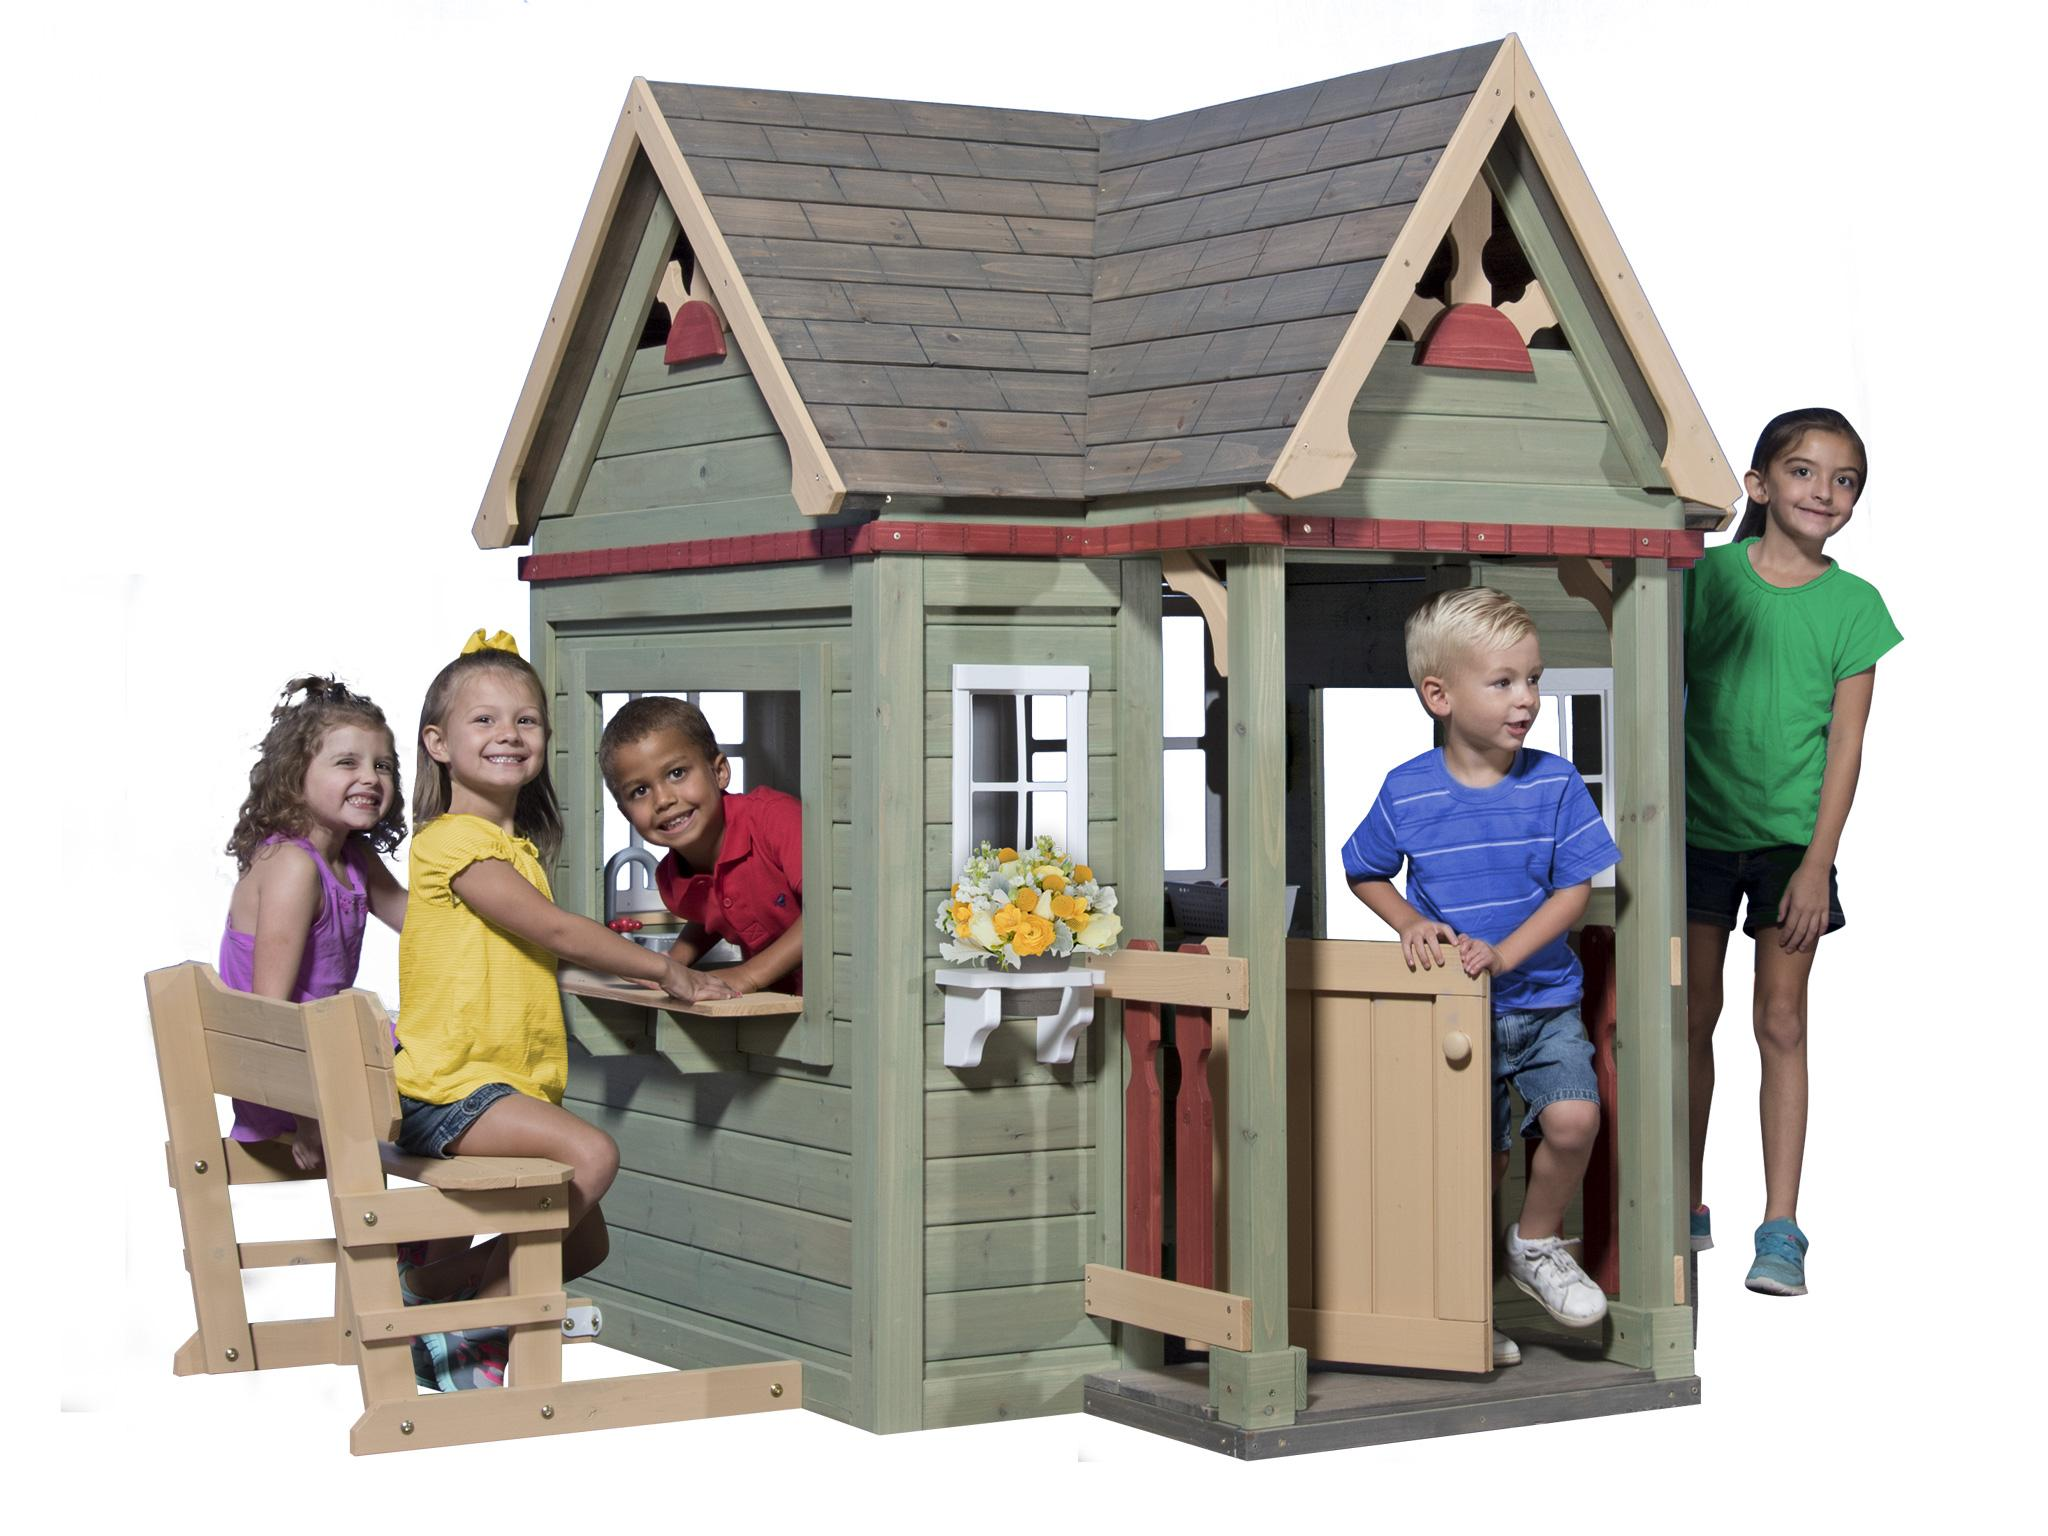 11 best children's playhouses | The Independent Playhouse Designs Castle Html on cardboard castle designs, castle playhouse plans, castle patio designs, castle playhouse with slide, castle bedroom designs, castle playhouse ideas, lego castle designs,